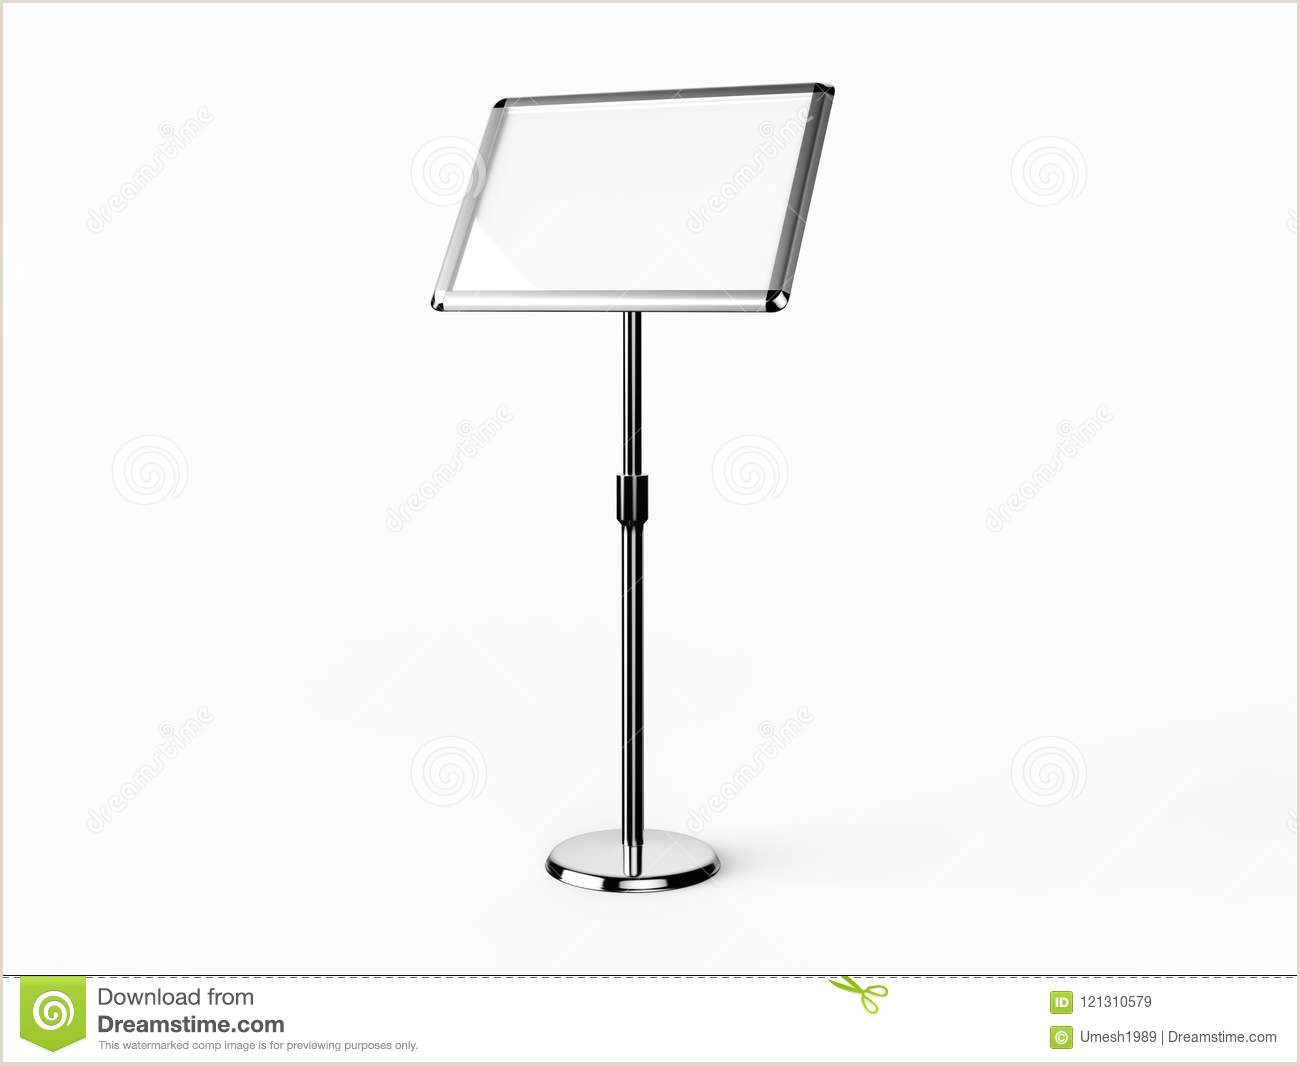 Large Poster Stand Poster Stand Stock Illustrations – 34 284 Poster Stand Stock